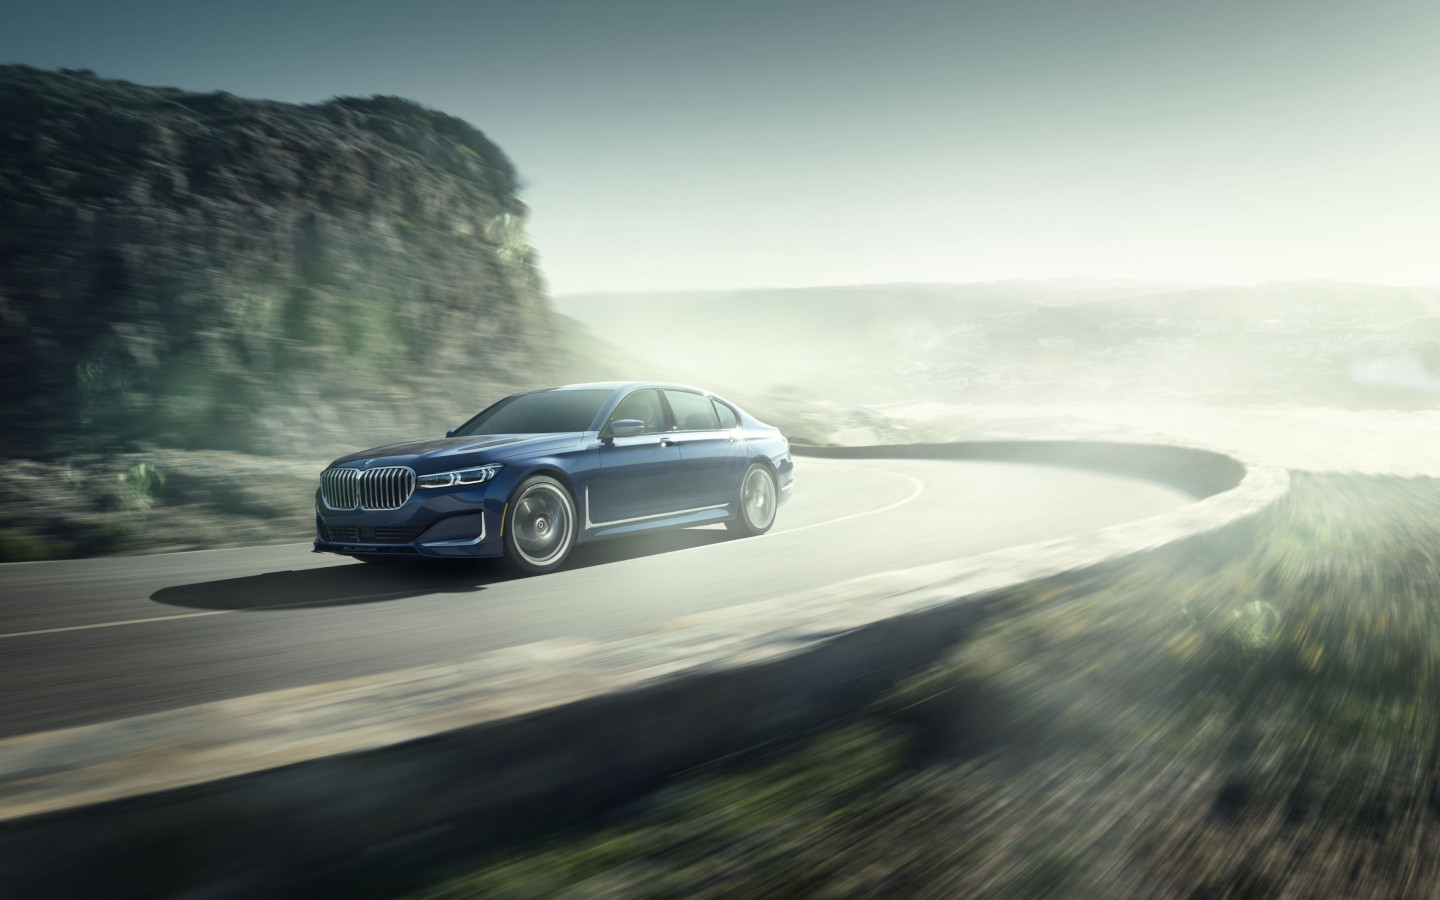 BMW Alpina B7 2019 wallpaper 1440x900